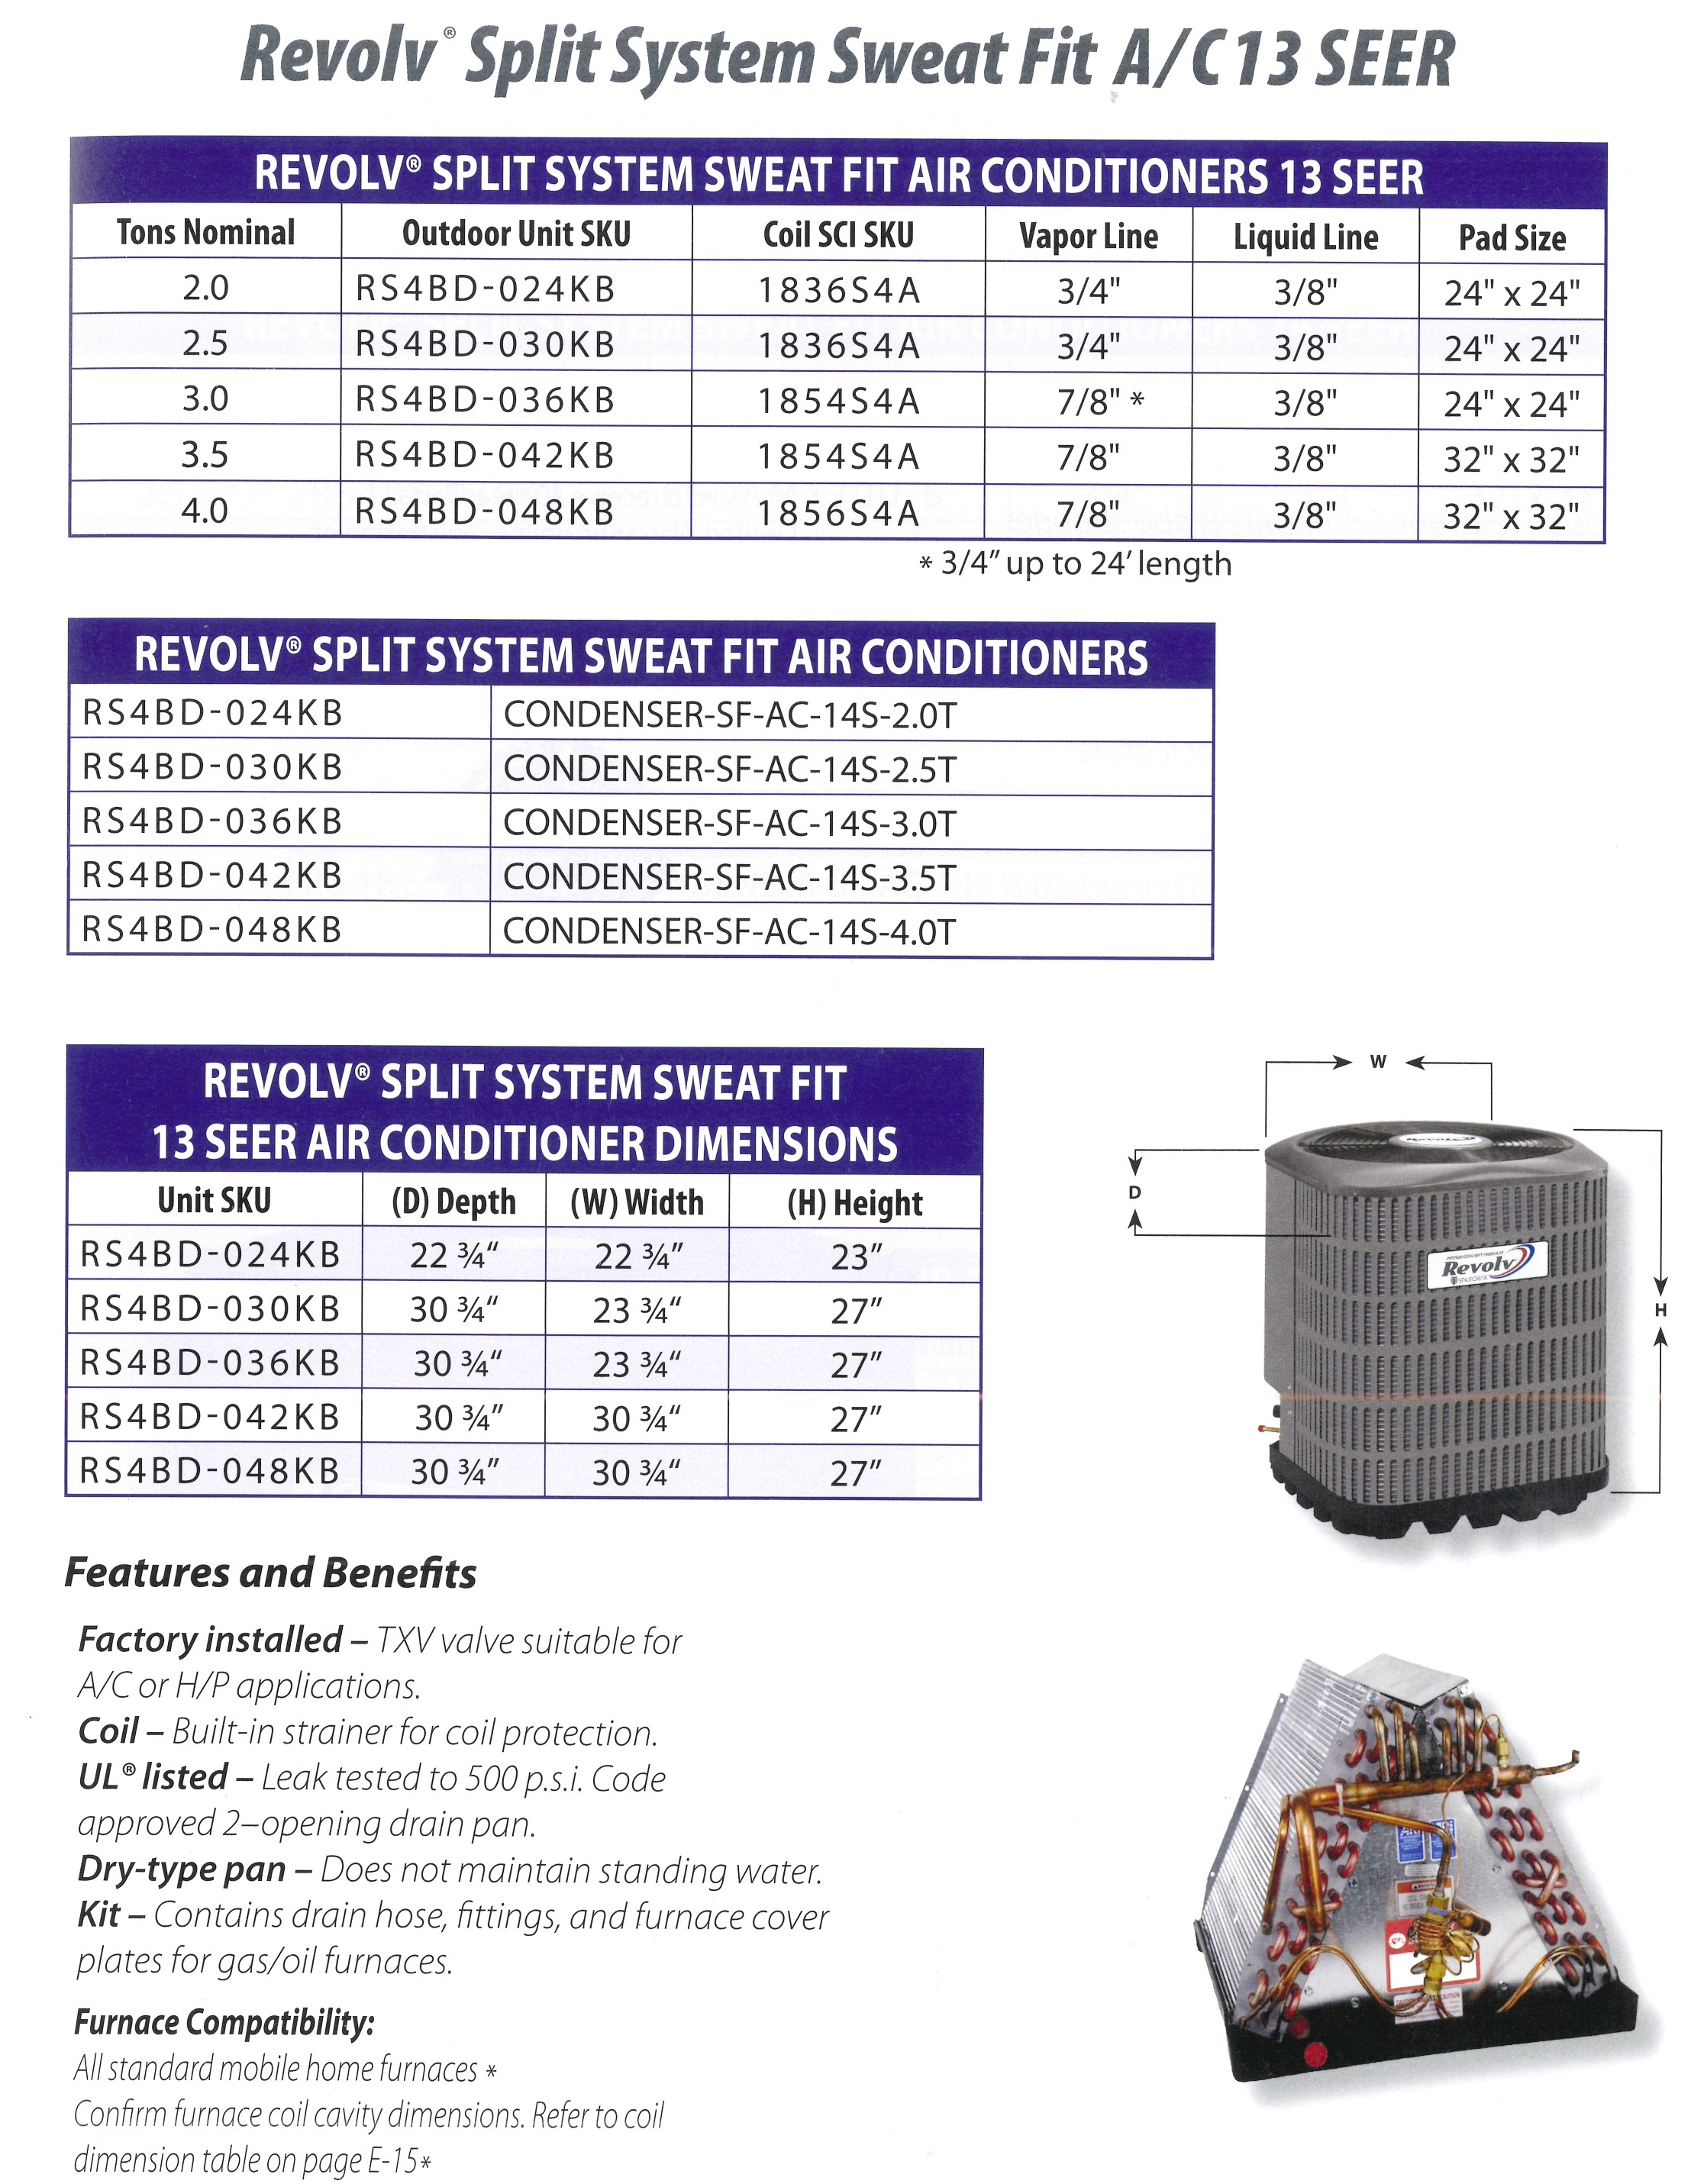 Revolve Split System Sweat Fit AC13 SEER